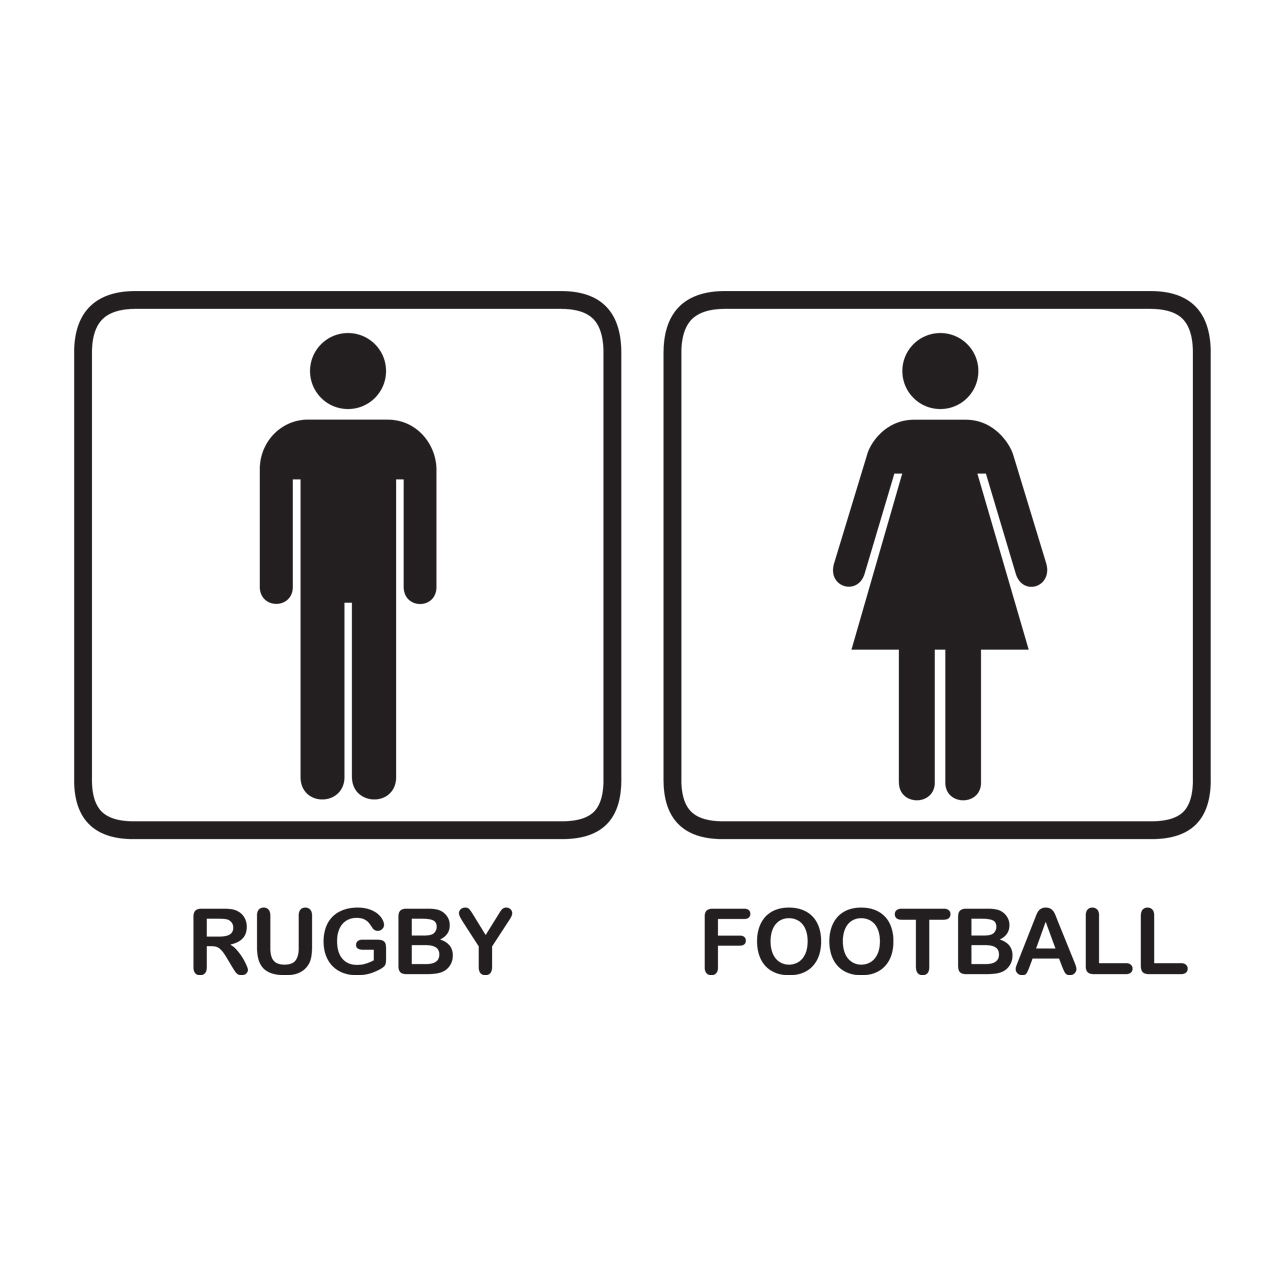 Fun and Funky Printed T-Shirts from Jageto Embroidery and Print in Braintree, Essex in the UK - Rugby Football Toilet Sign Printed T-Shirt